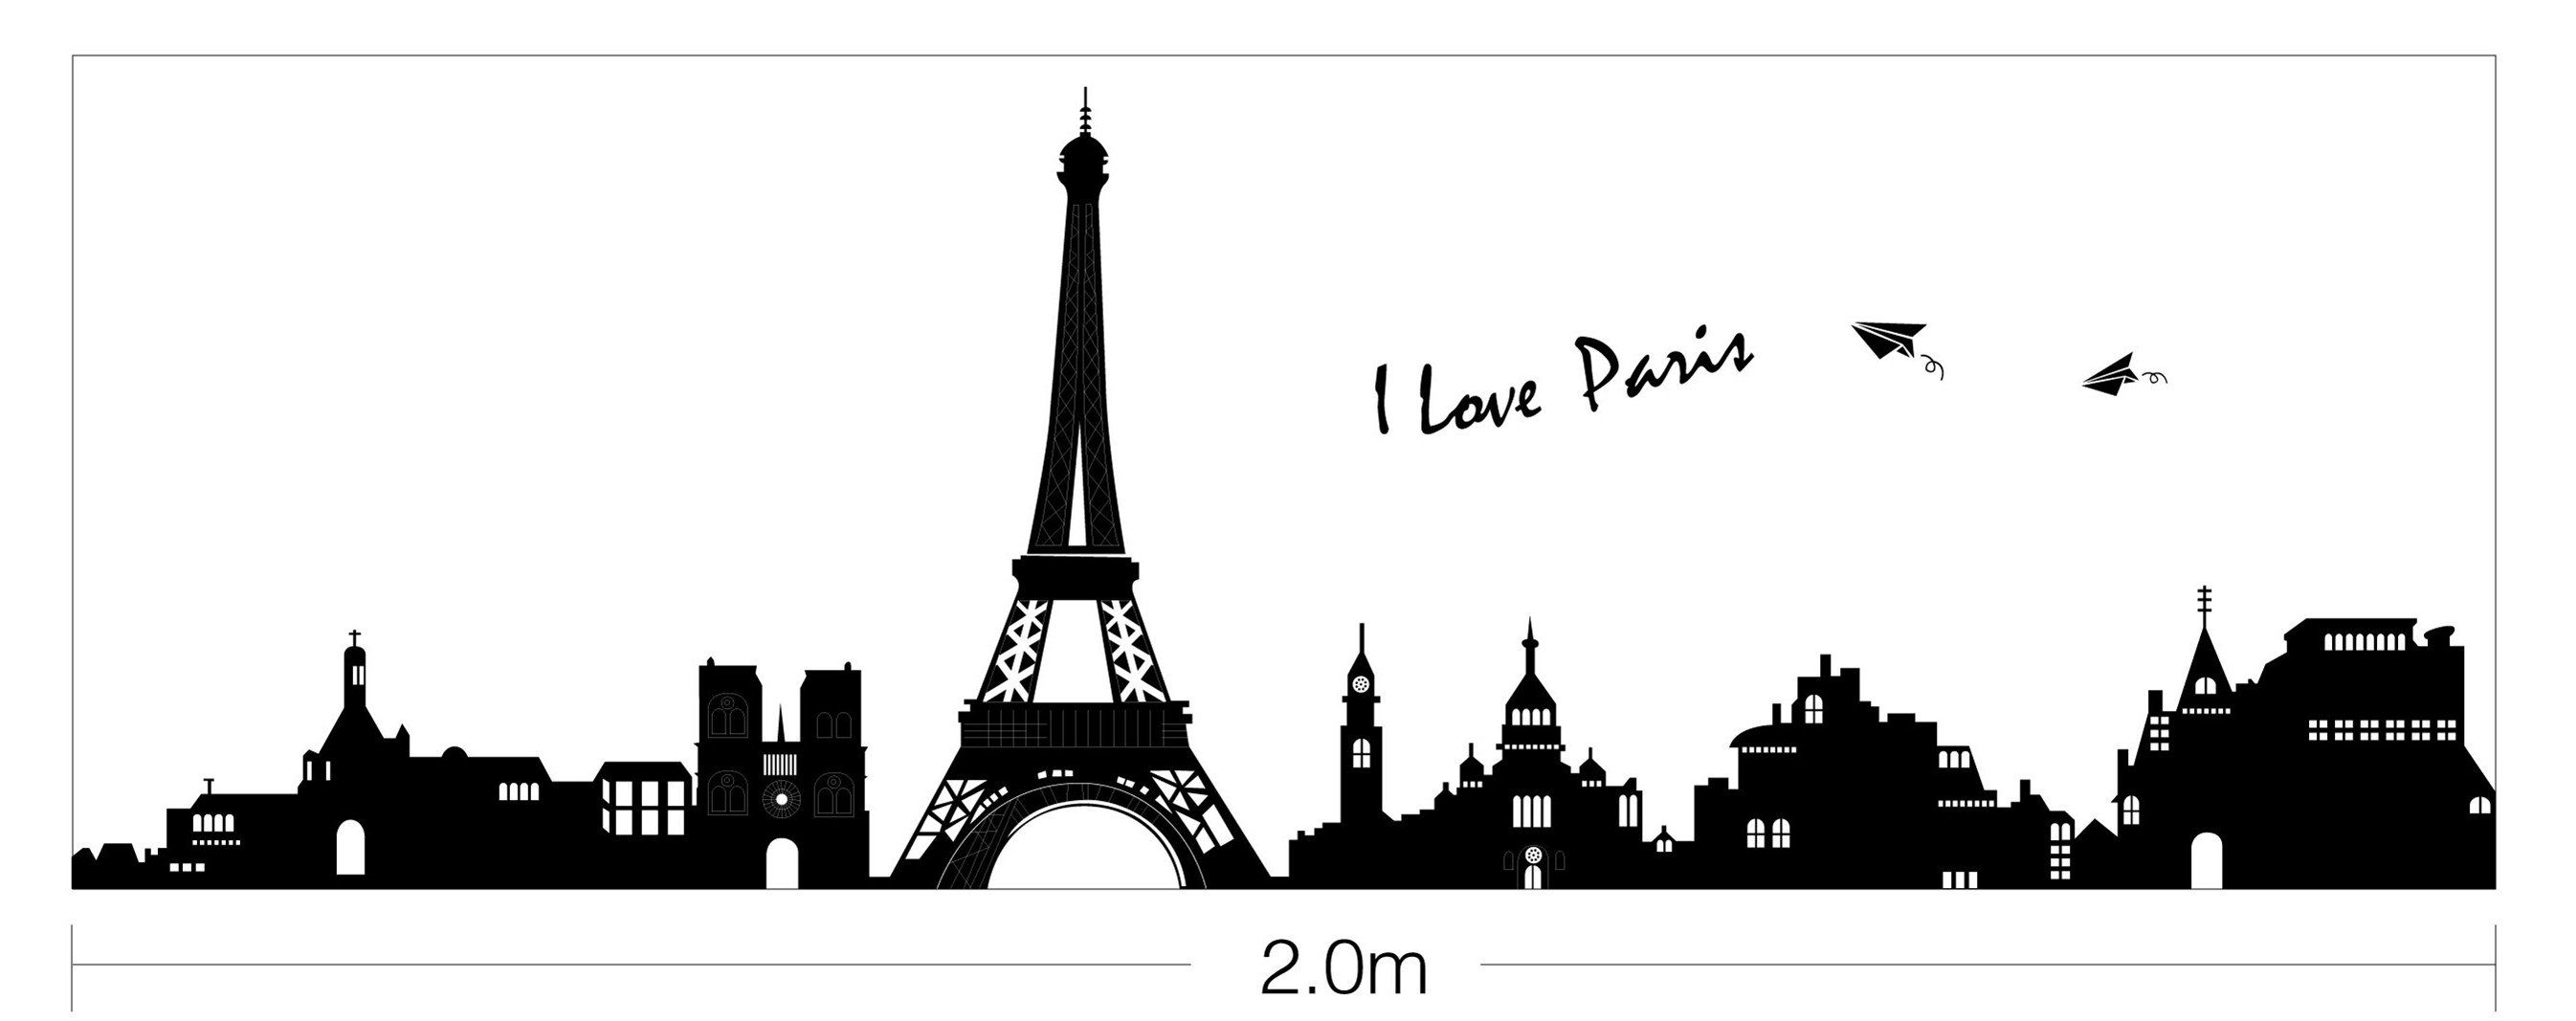 i love paris la tour eiffel wall stickers removable home decal art vinyl decor ebay. Black Bedroom Furniture Sets. Home Design Ideas